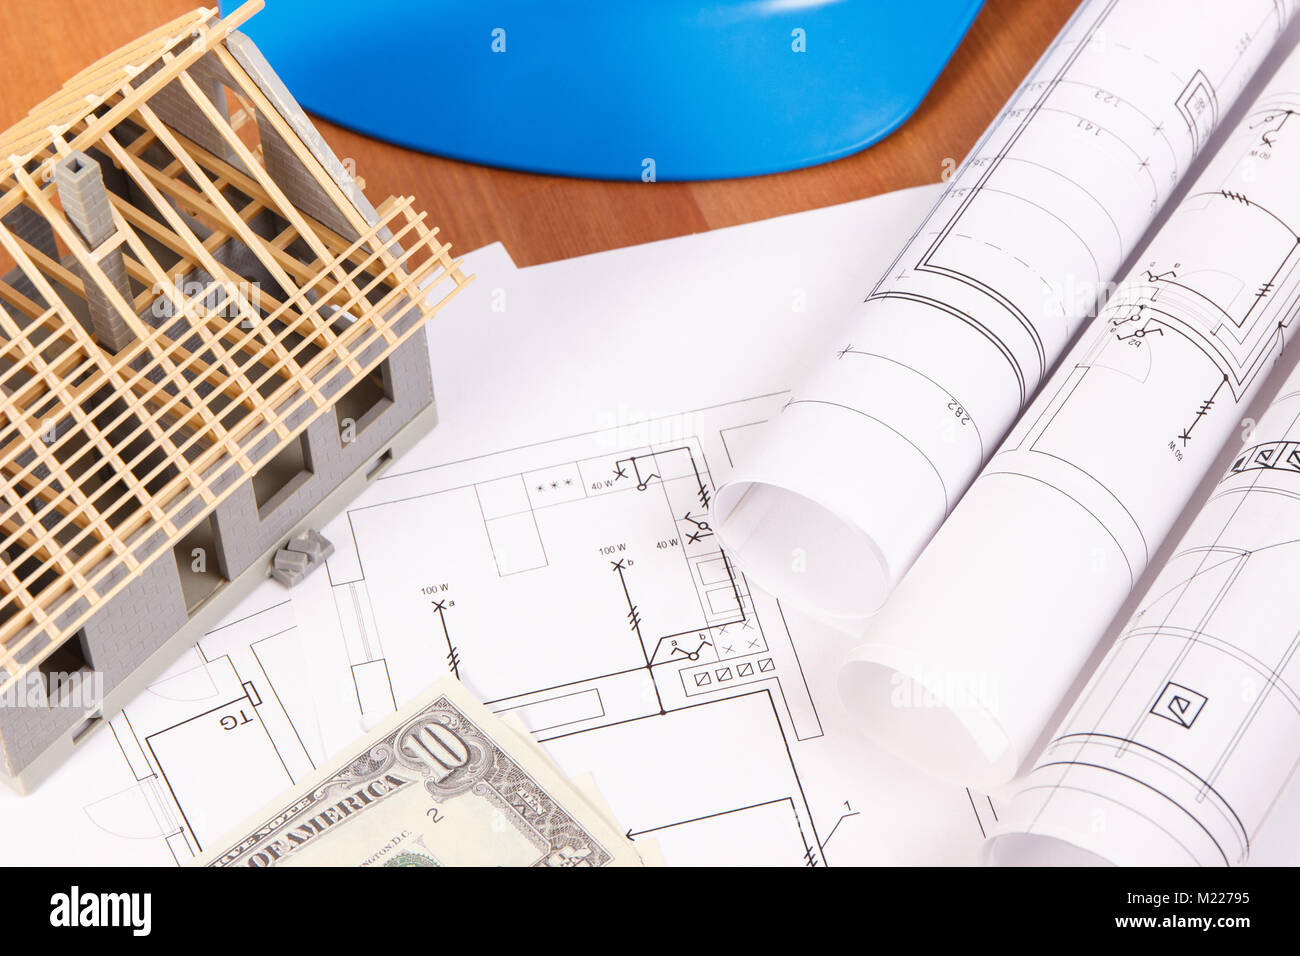 Electrical drawings or diagrams, accessories for engineer jobs ...